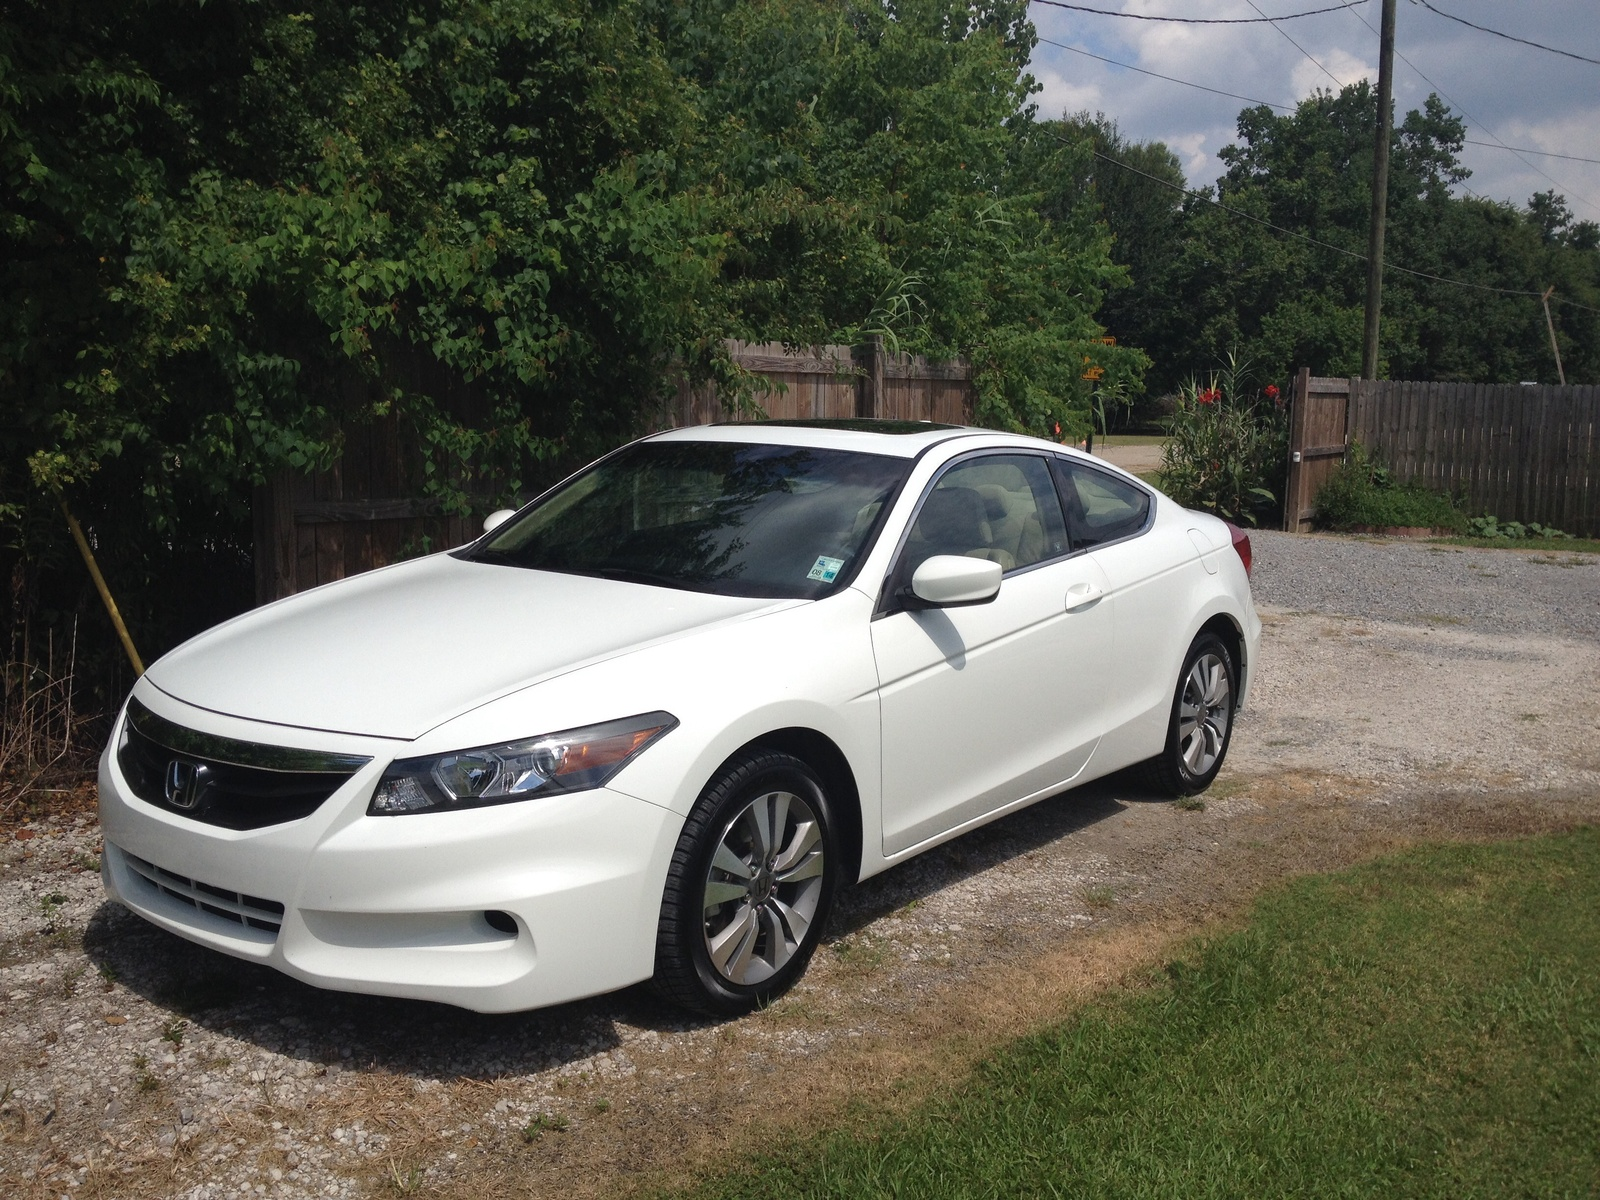 2008 honda accord ex-l coupe owners manual